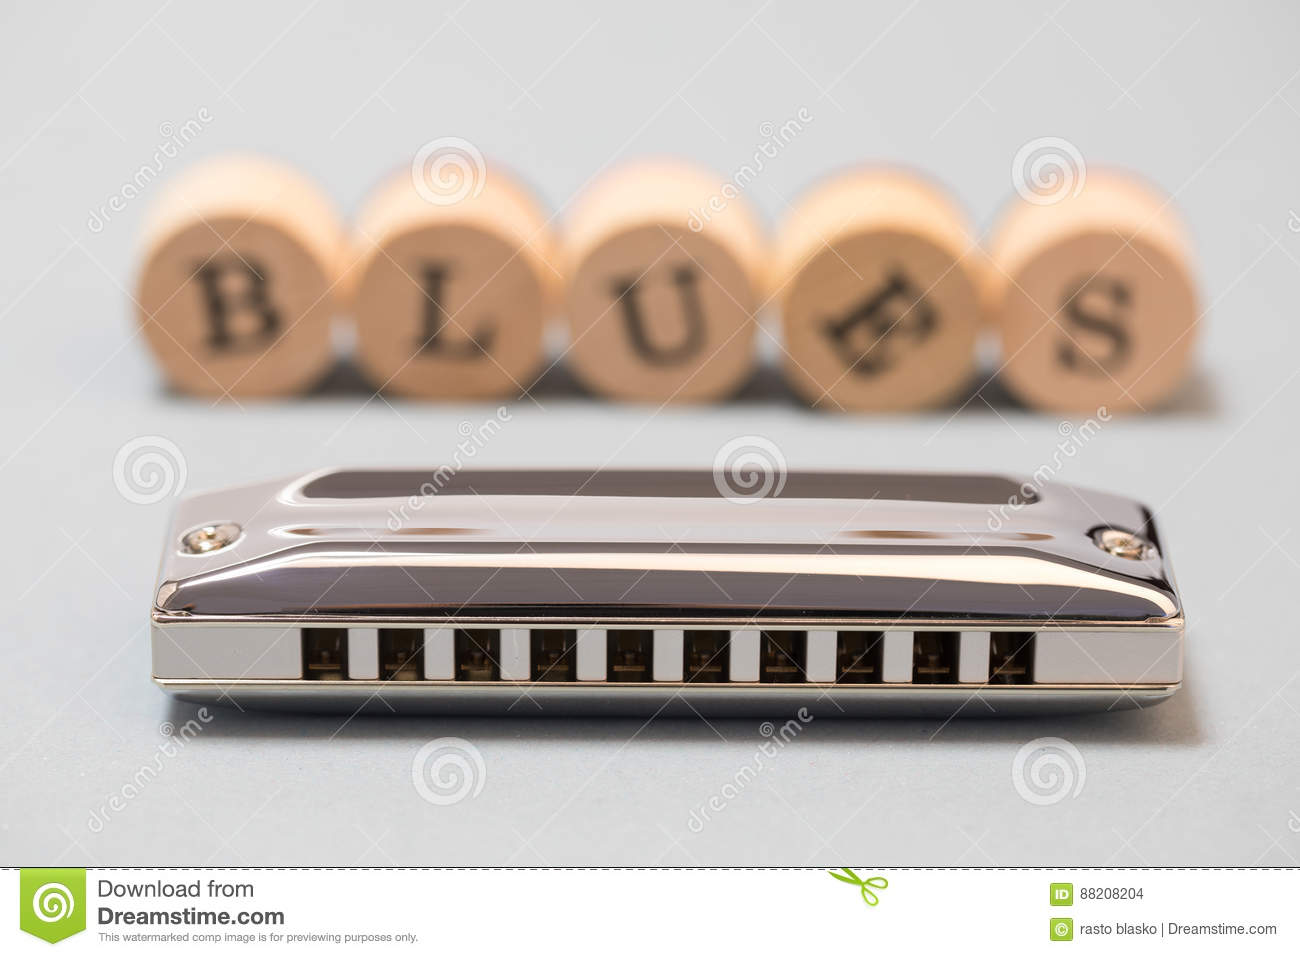 Diatonic blues harmonica stock photo  Image of music - 88208204